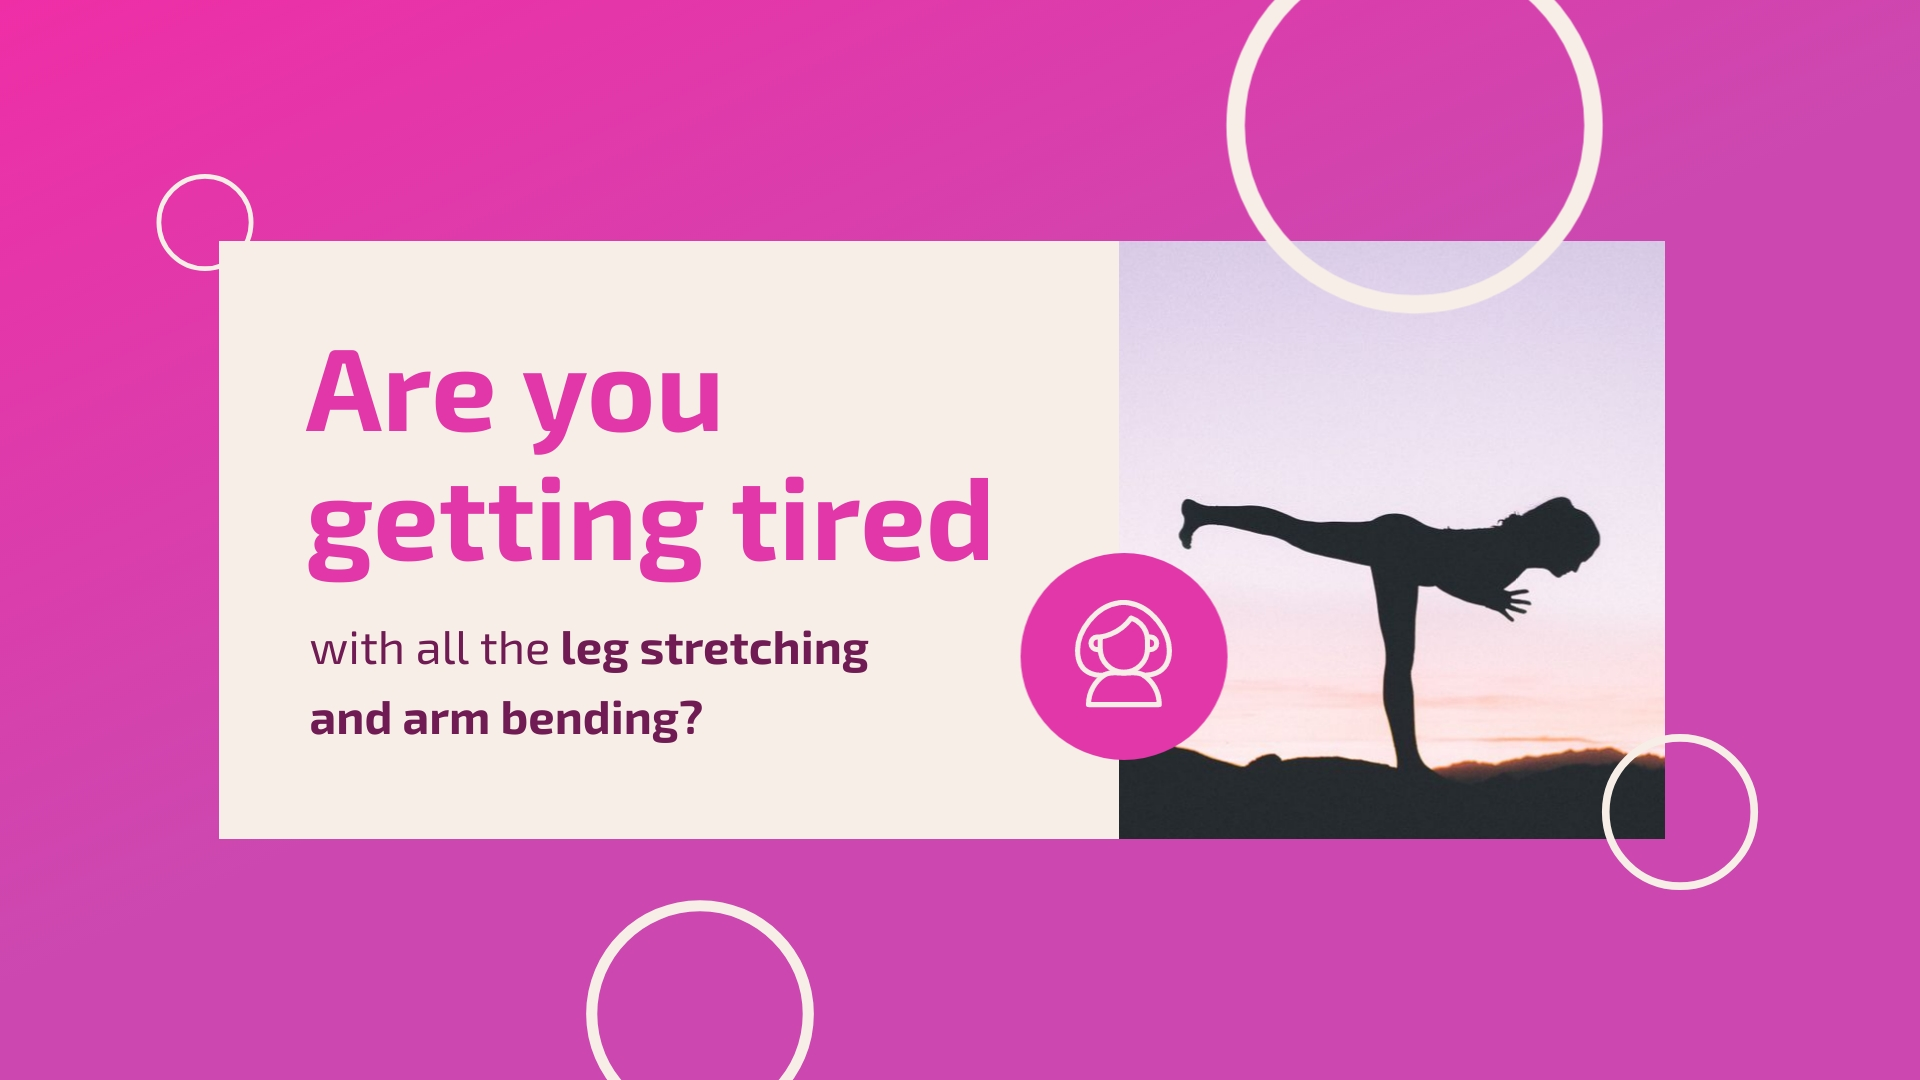 Yoga Instructor - YouTube Video Ad Template